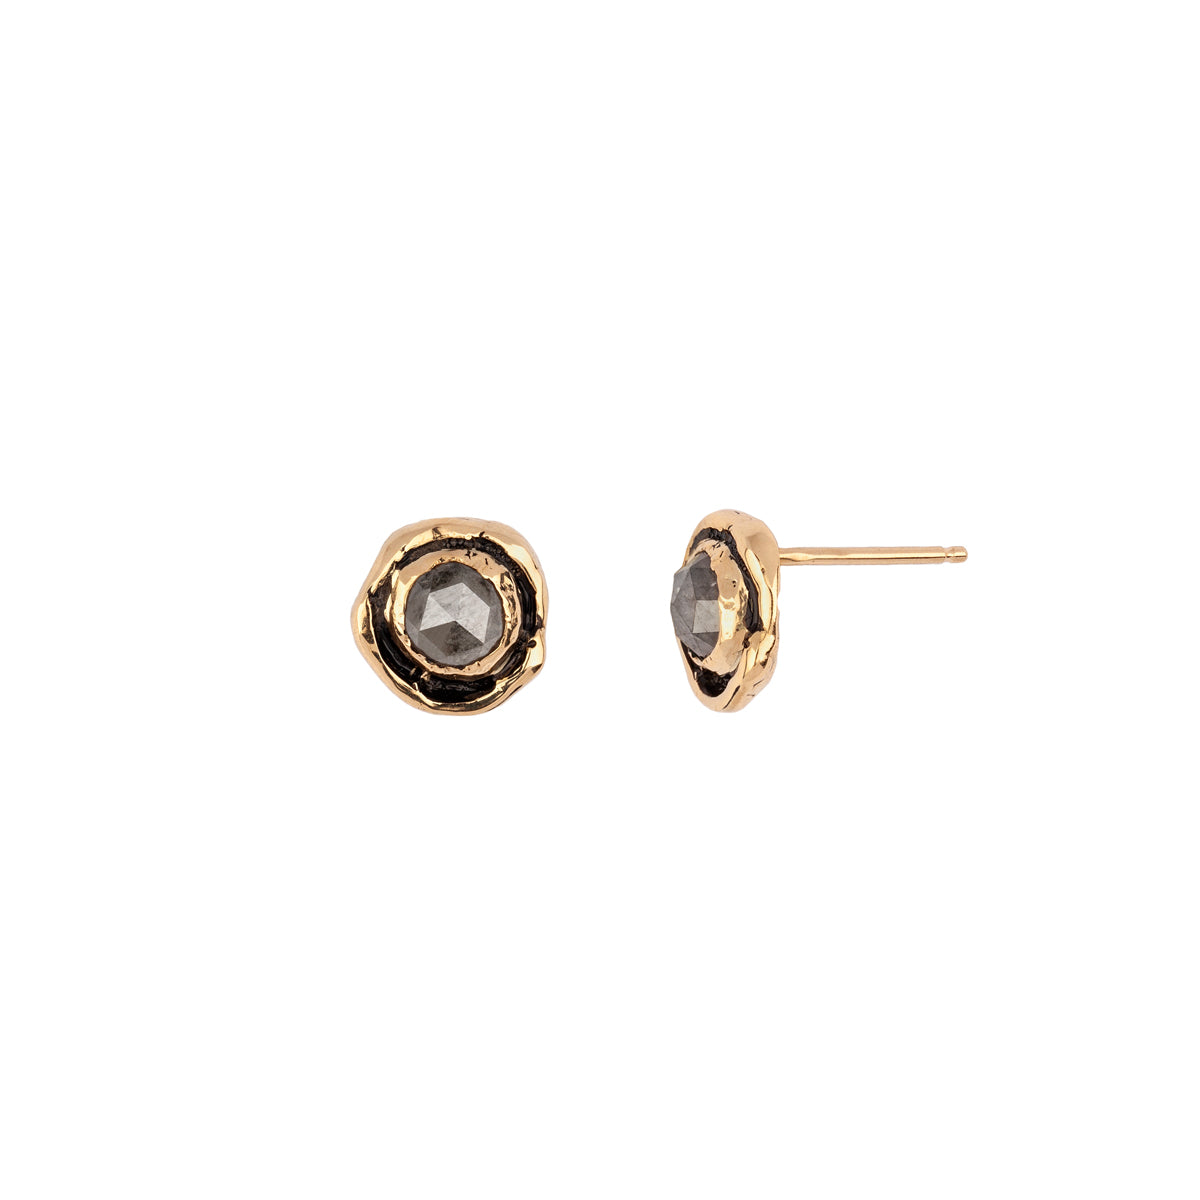 Small Grey Rustic Diamond Faceted Stone 14K Gold Stud